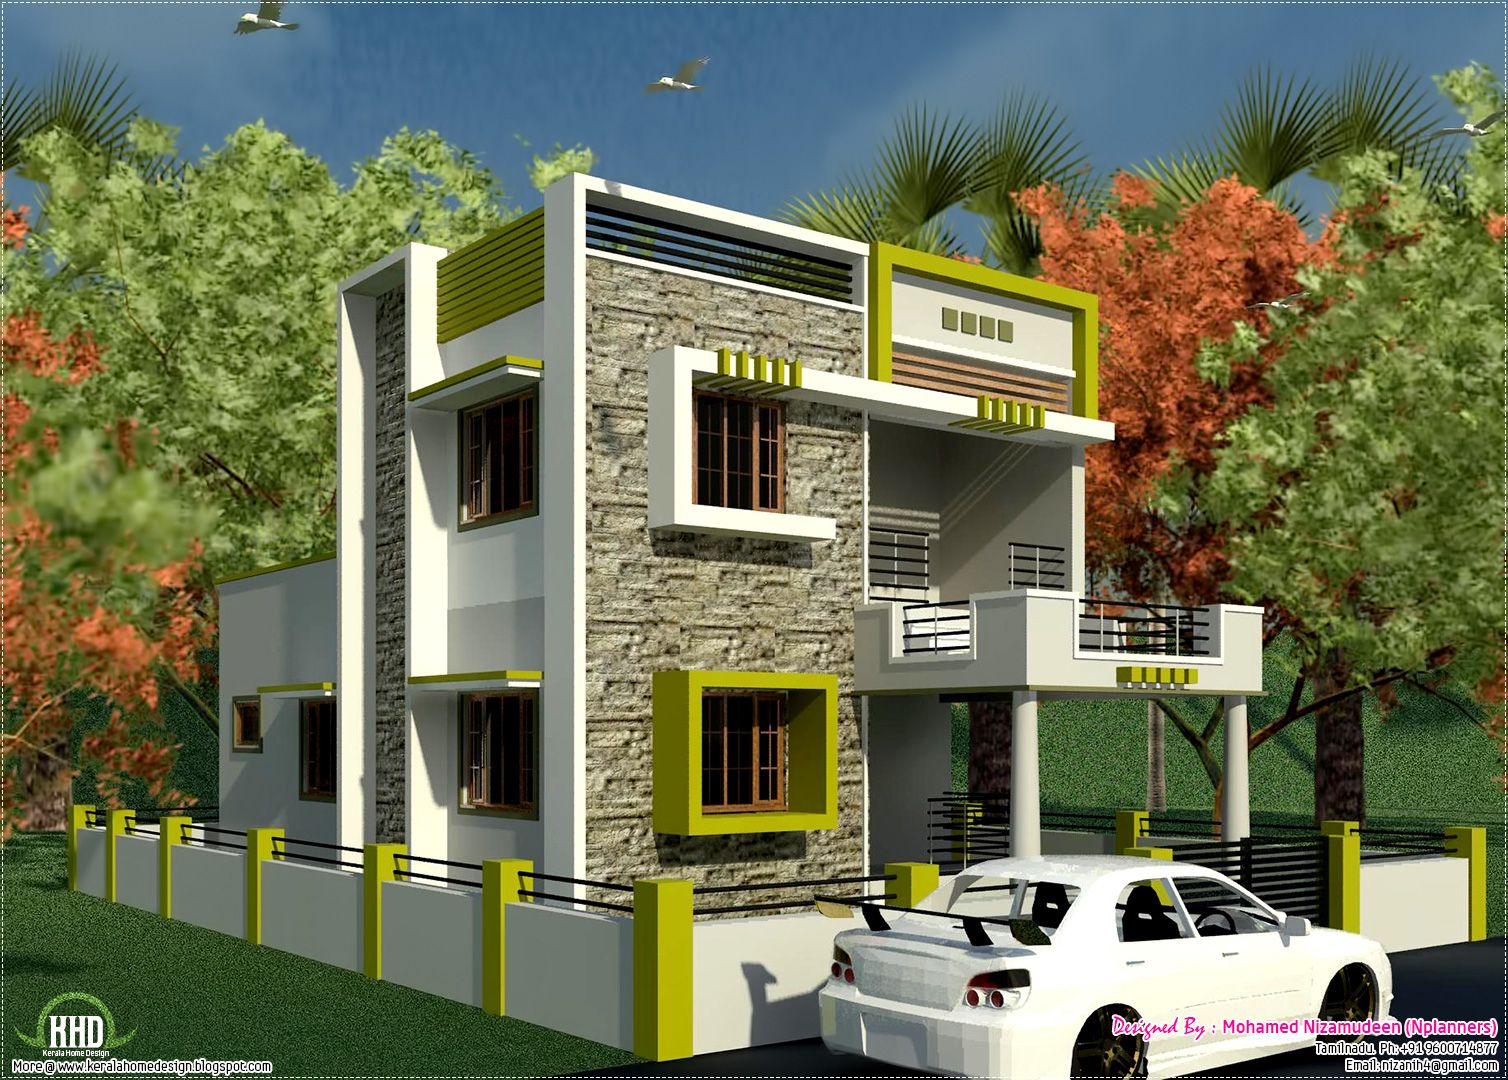 Small house with car park design tobfav com ideas for Indian house structure design